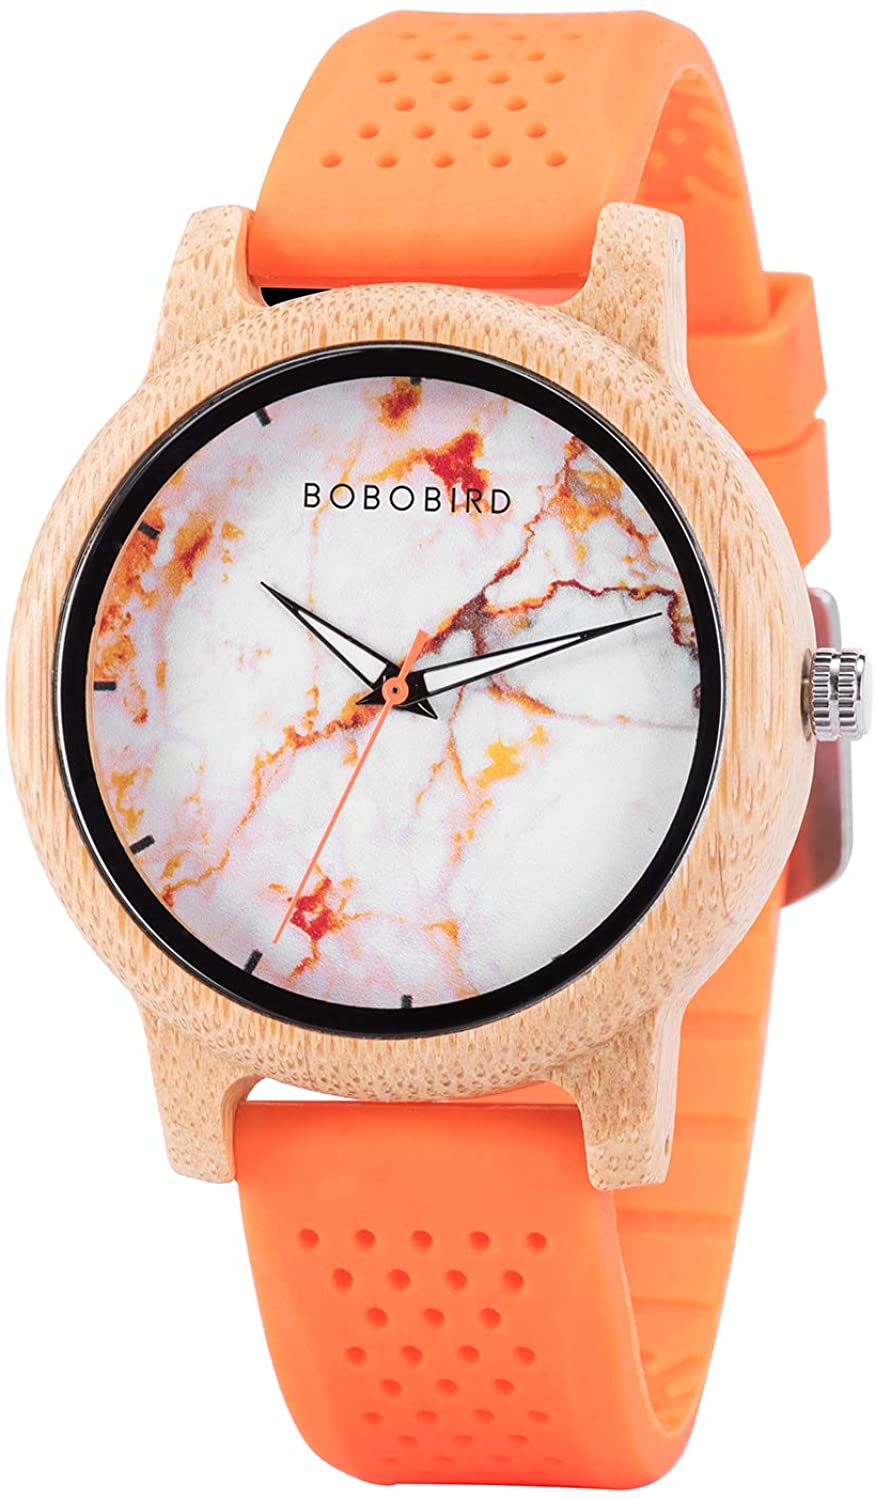 Wood Watches for Men,Wooden Handmade Watch with Lightweight Orange Band, Natural Casual Fashion Quartz Watches